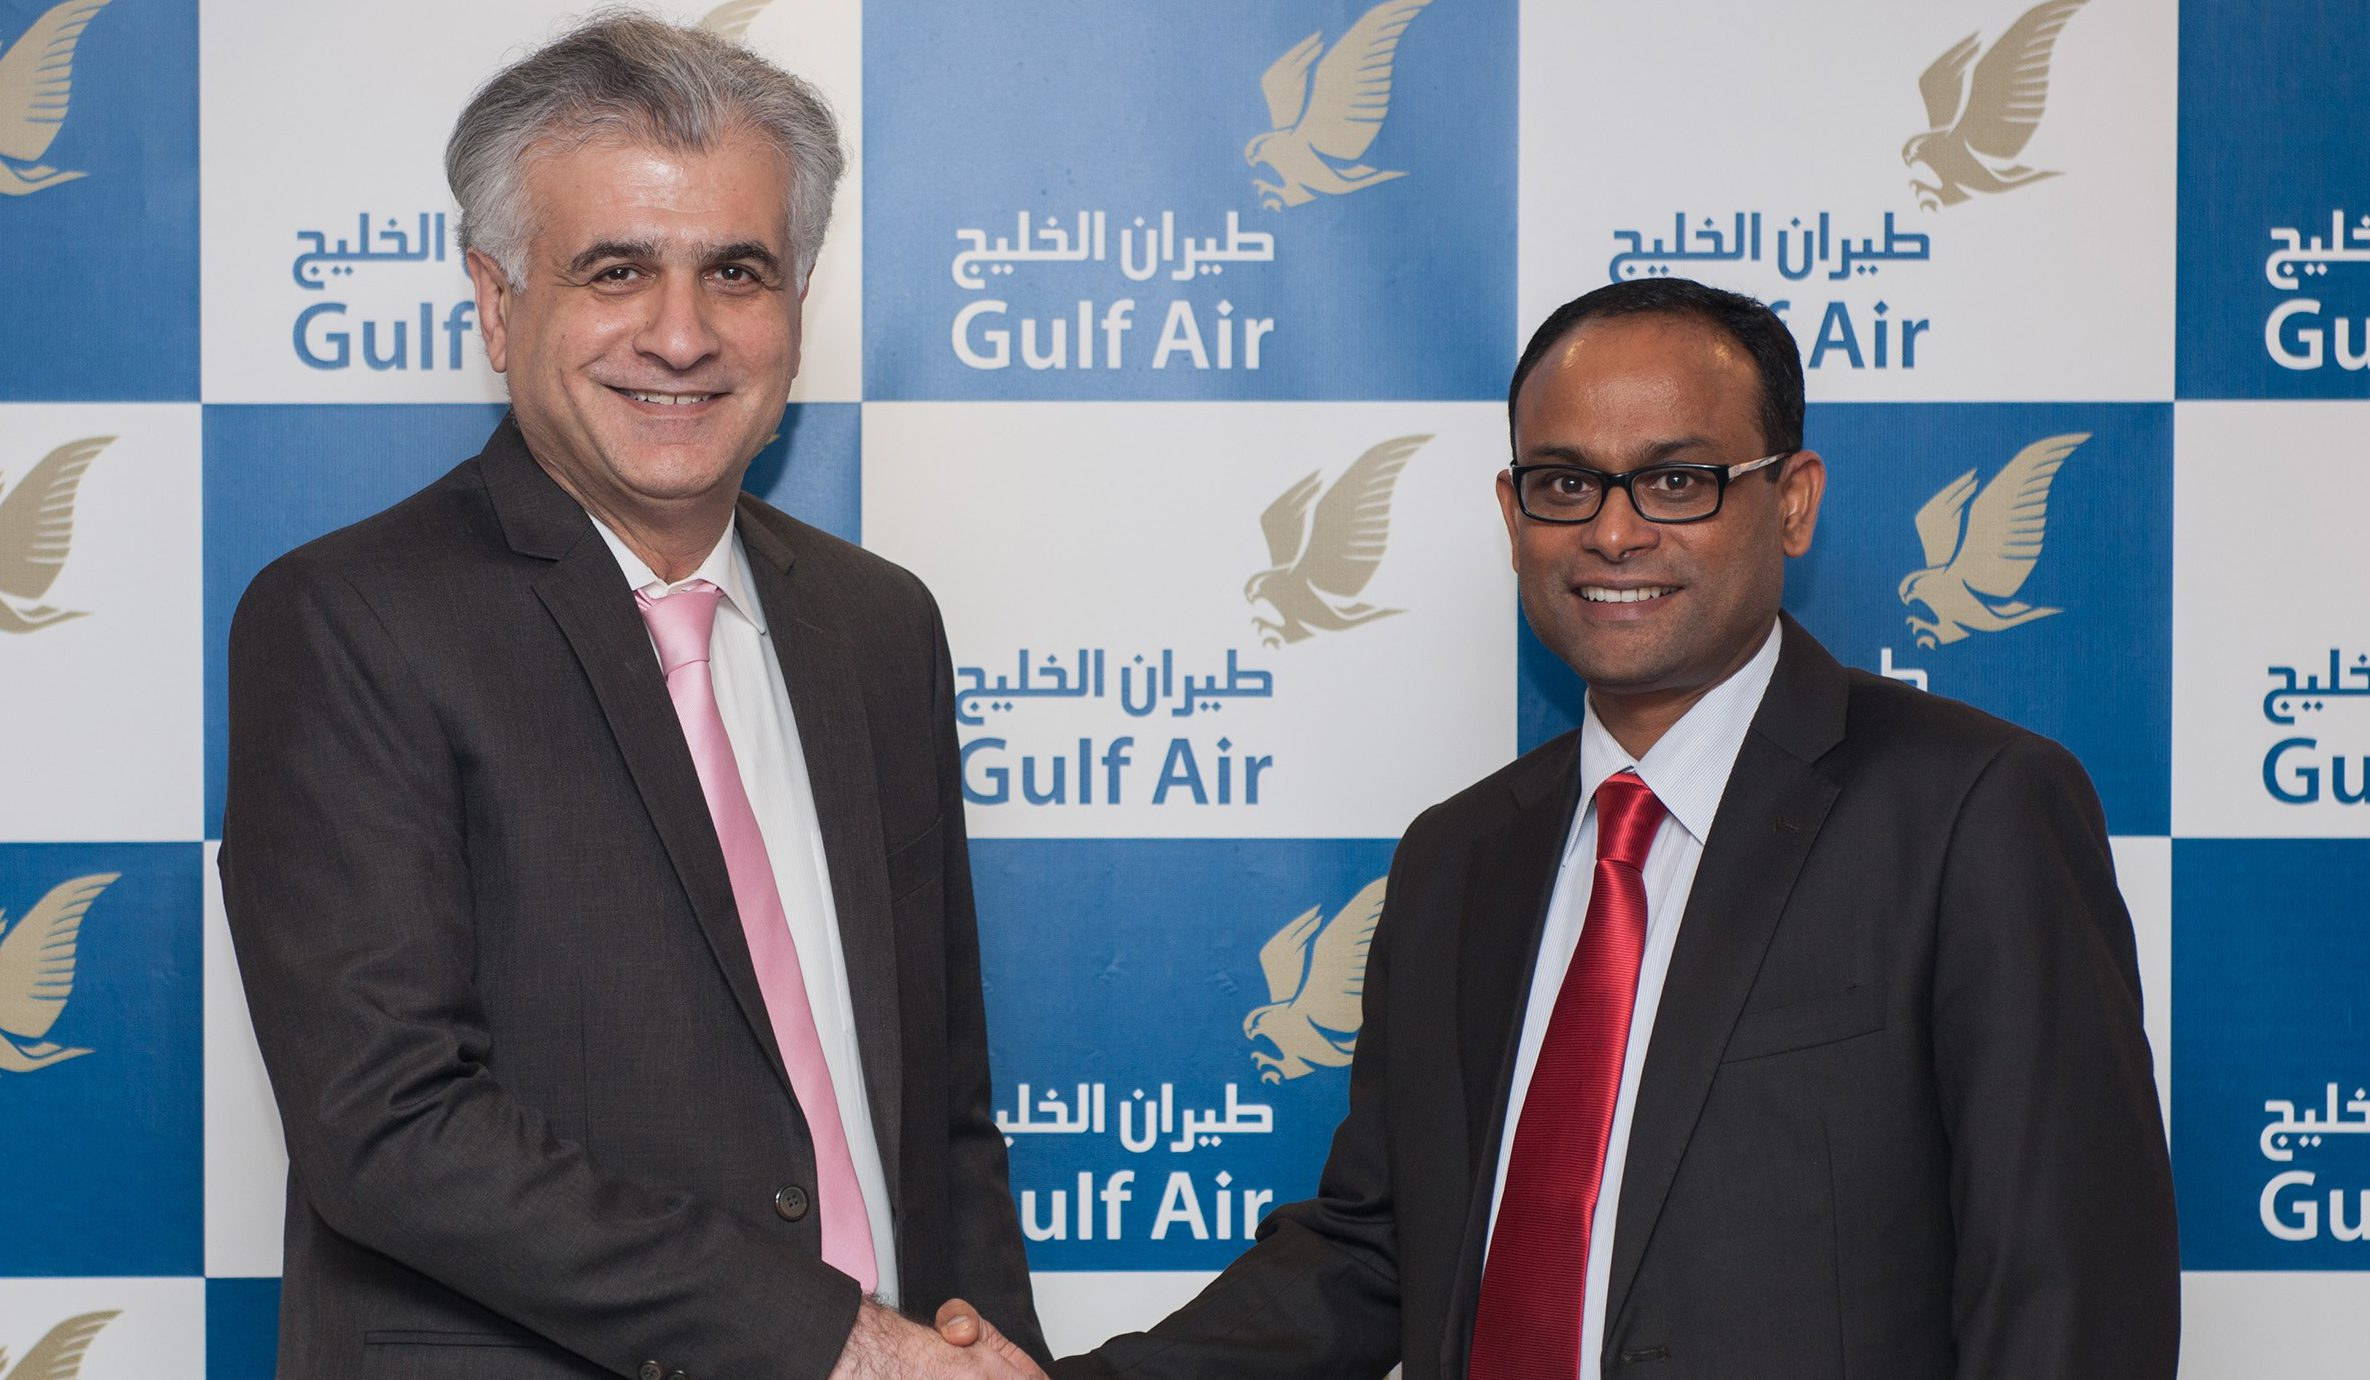 Gulf Air selects Finesse for analytics dashboard